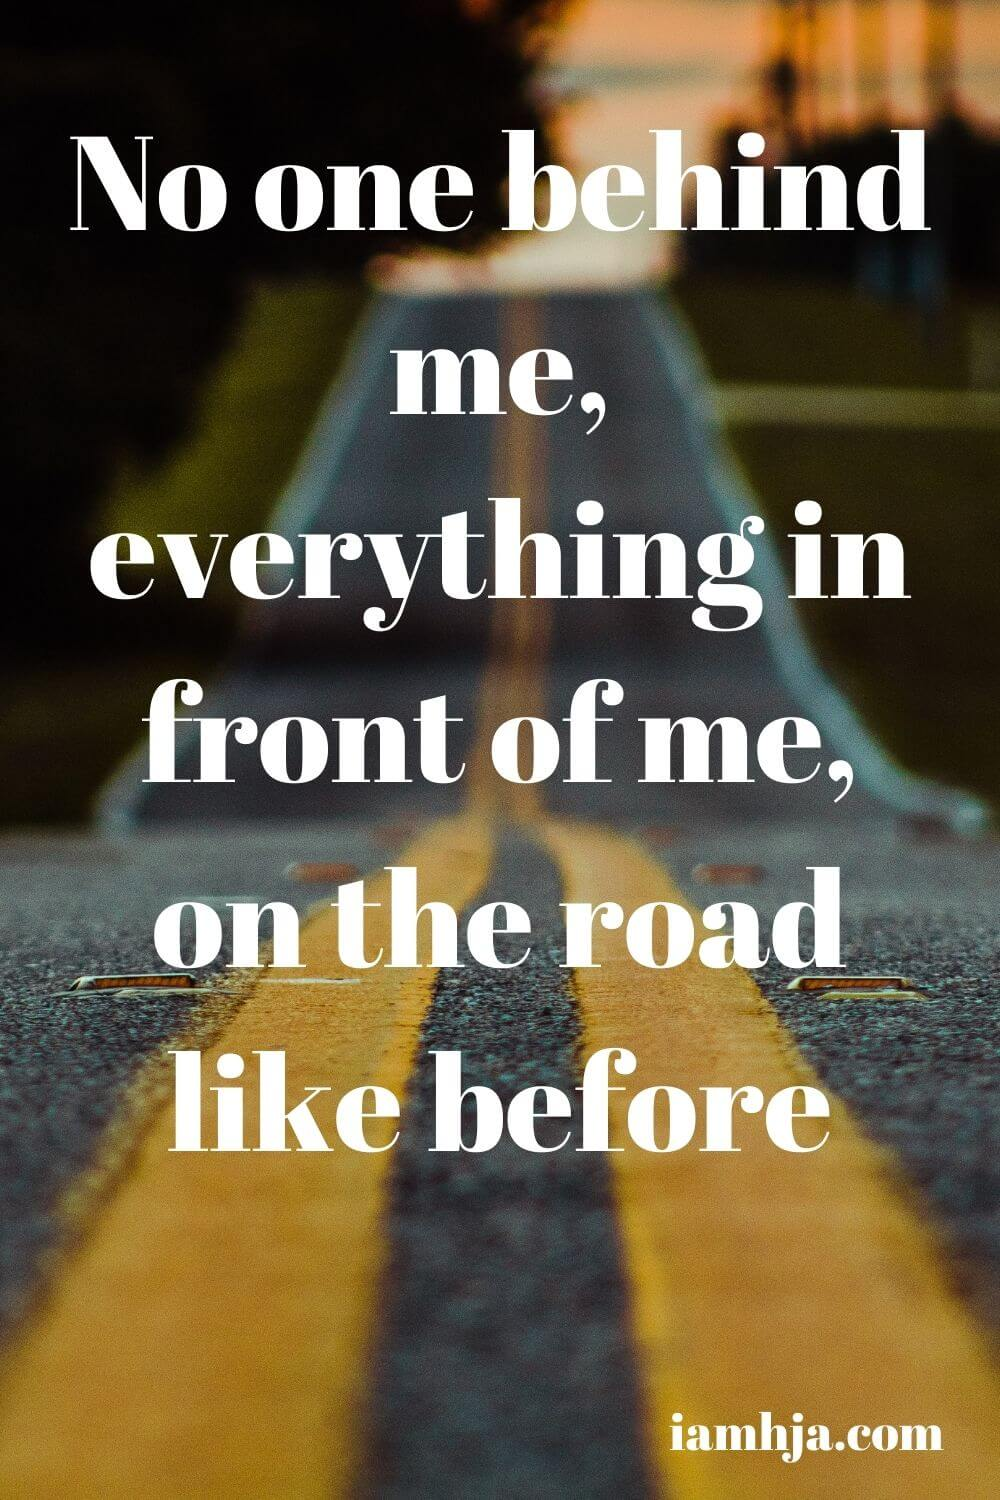 No one behind me, everything in front of me, on the road like before